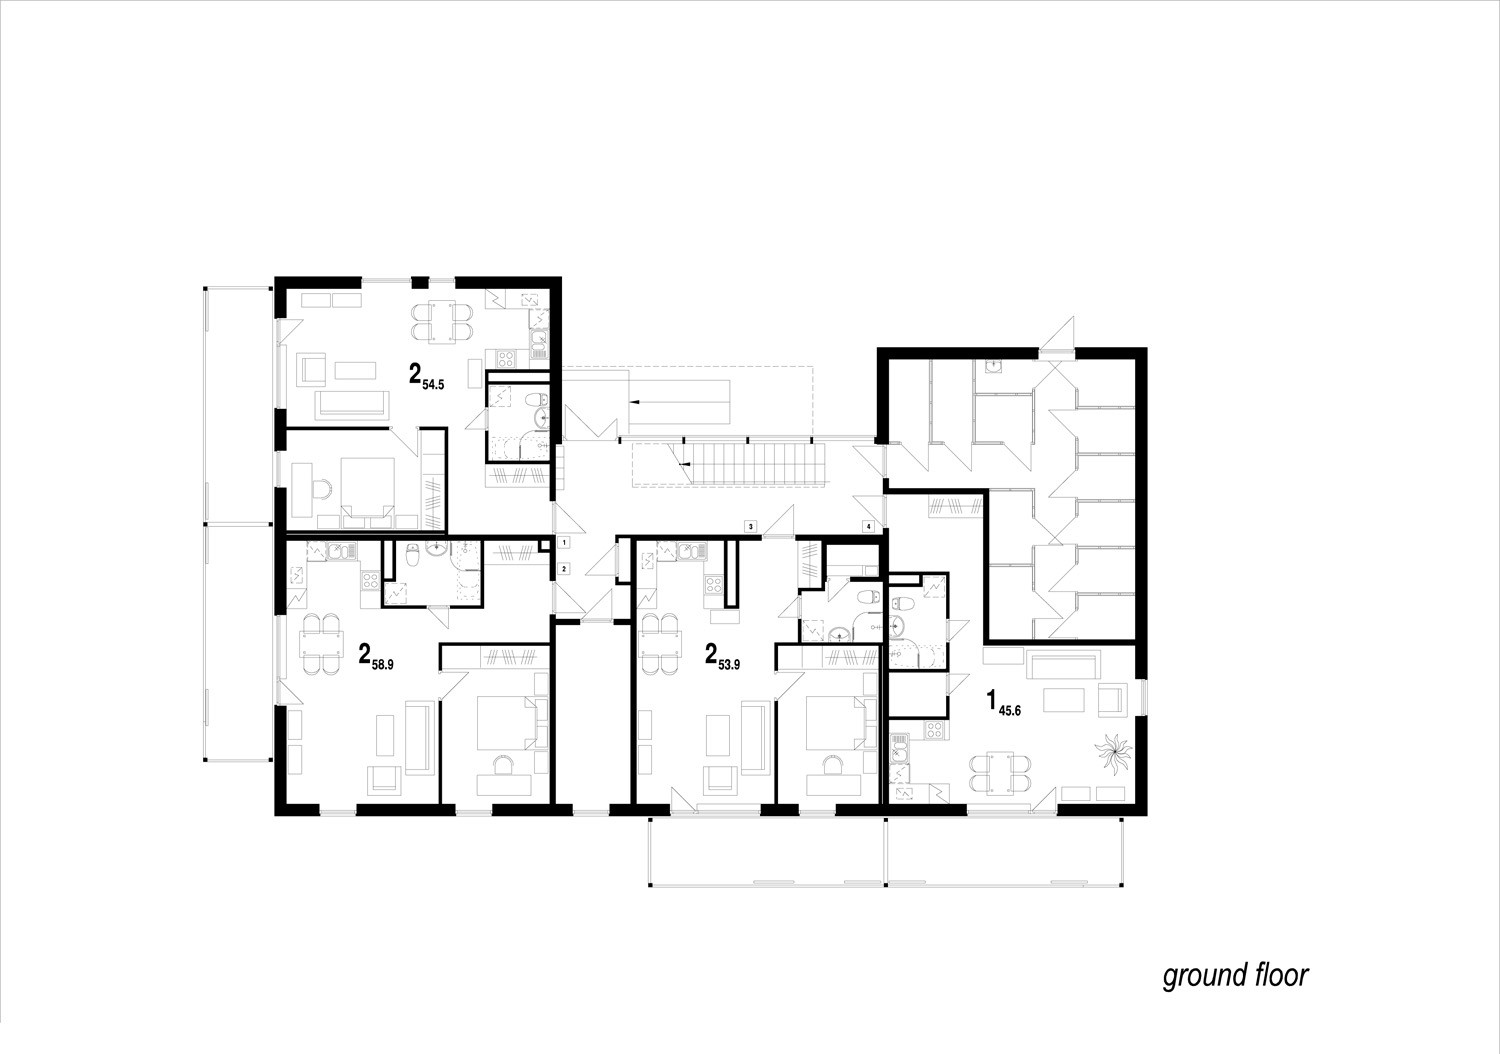 mountain cabin design ideas with 500f22c928ba0d0cc7001ce5 6 Residential Houses In Pahkli Street Jvr Arhitektuuriburoo Image on 500f22c928ba0d0cc7001ce5 6 Residential Houses In Pahkli Street Jvr Arhitektuuriburoo Image in addition High Times in addition Brown Roofs together with 240 Sq Ft Mountain Hideout With 96 Sq Ft Loft in addition Rustic Mountain Retreat Montana.